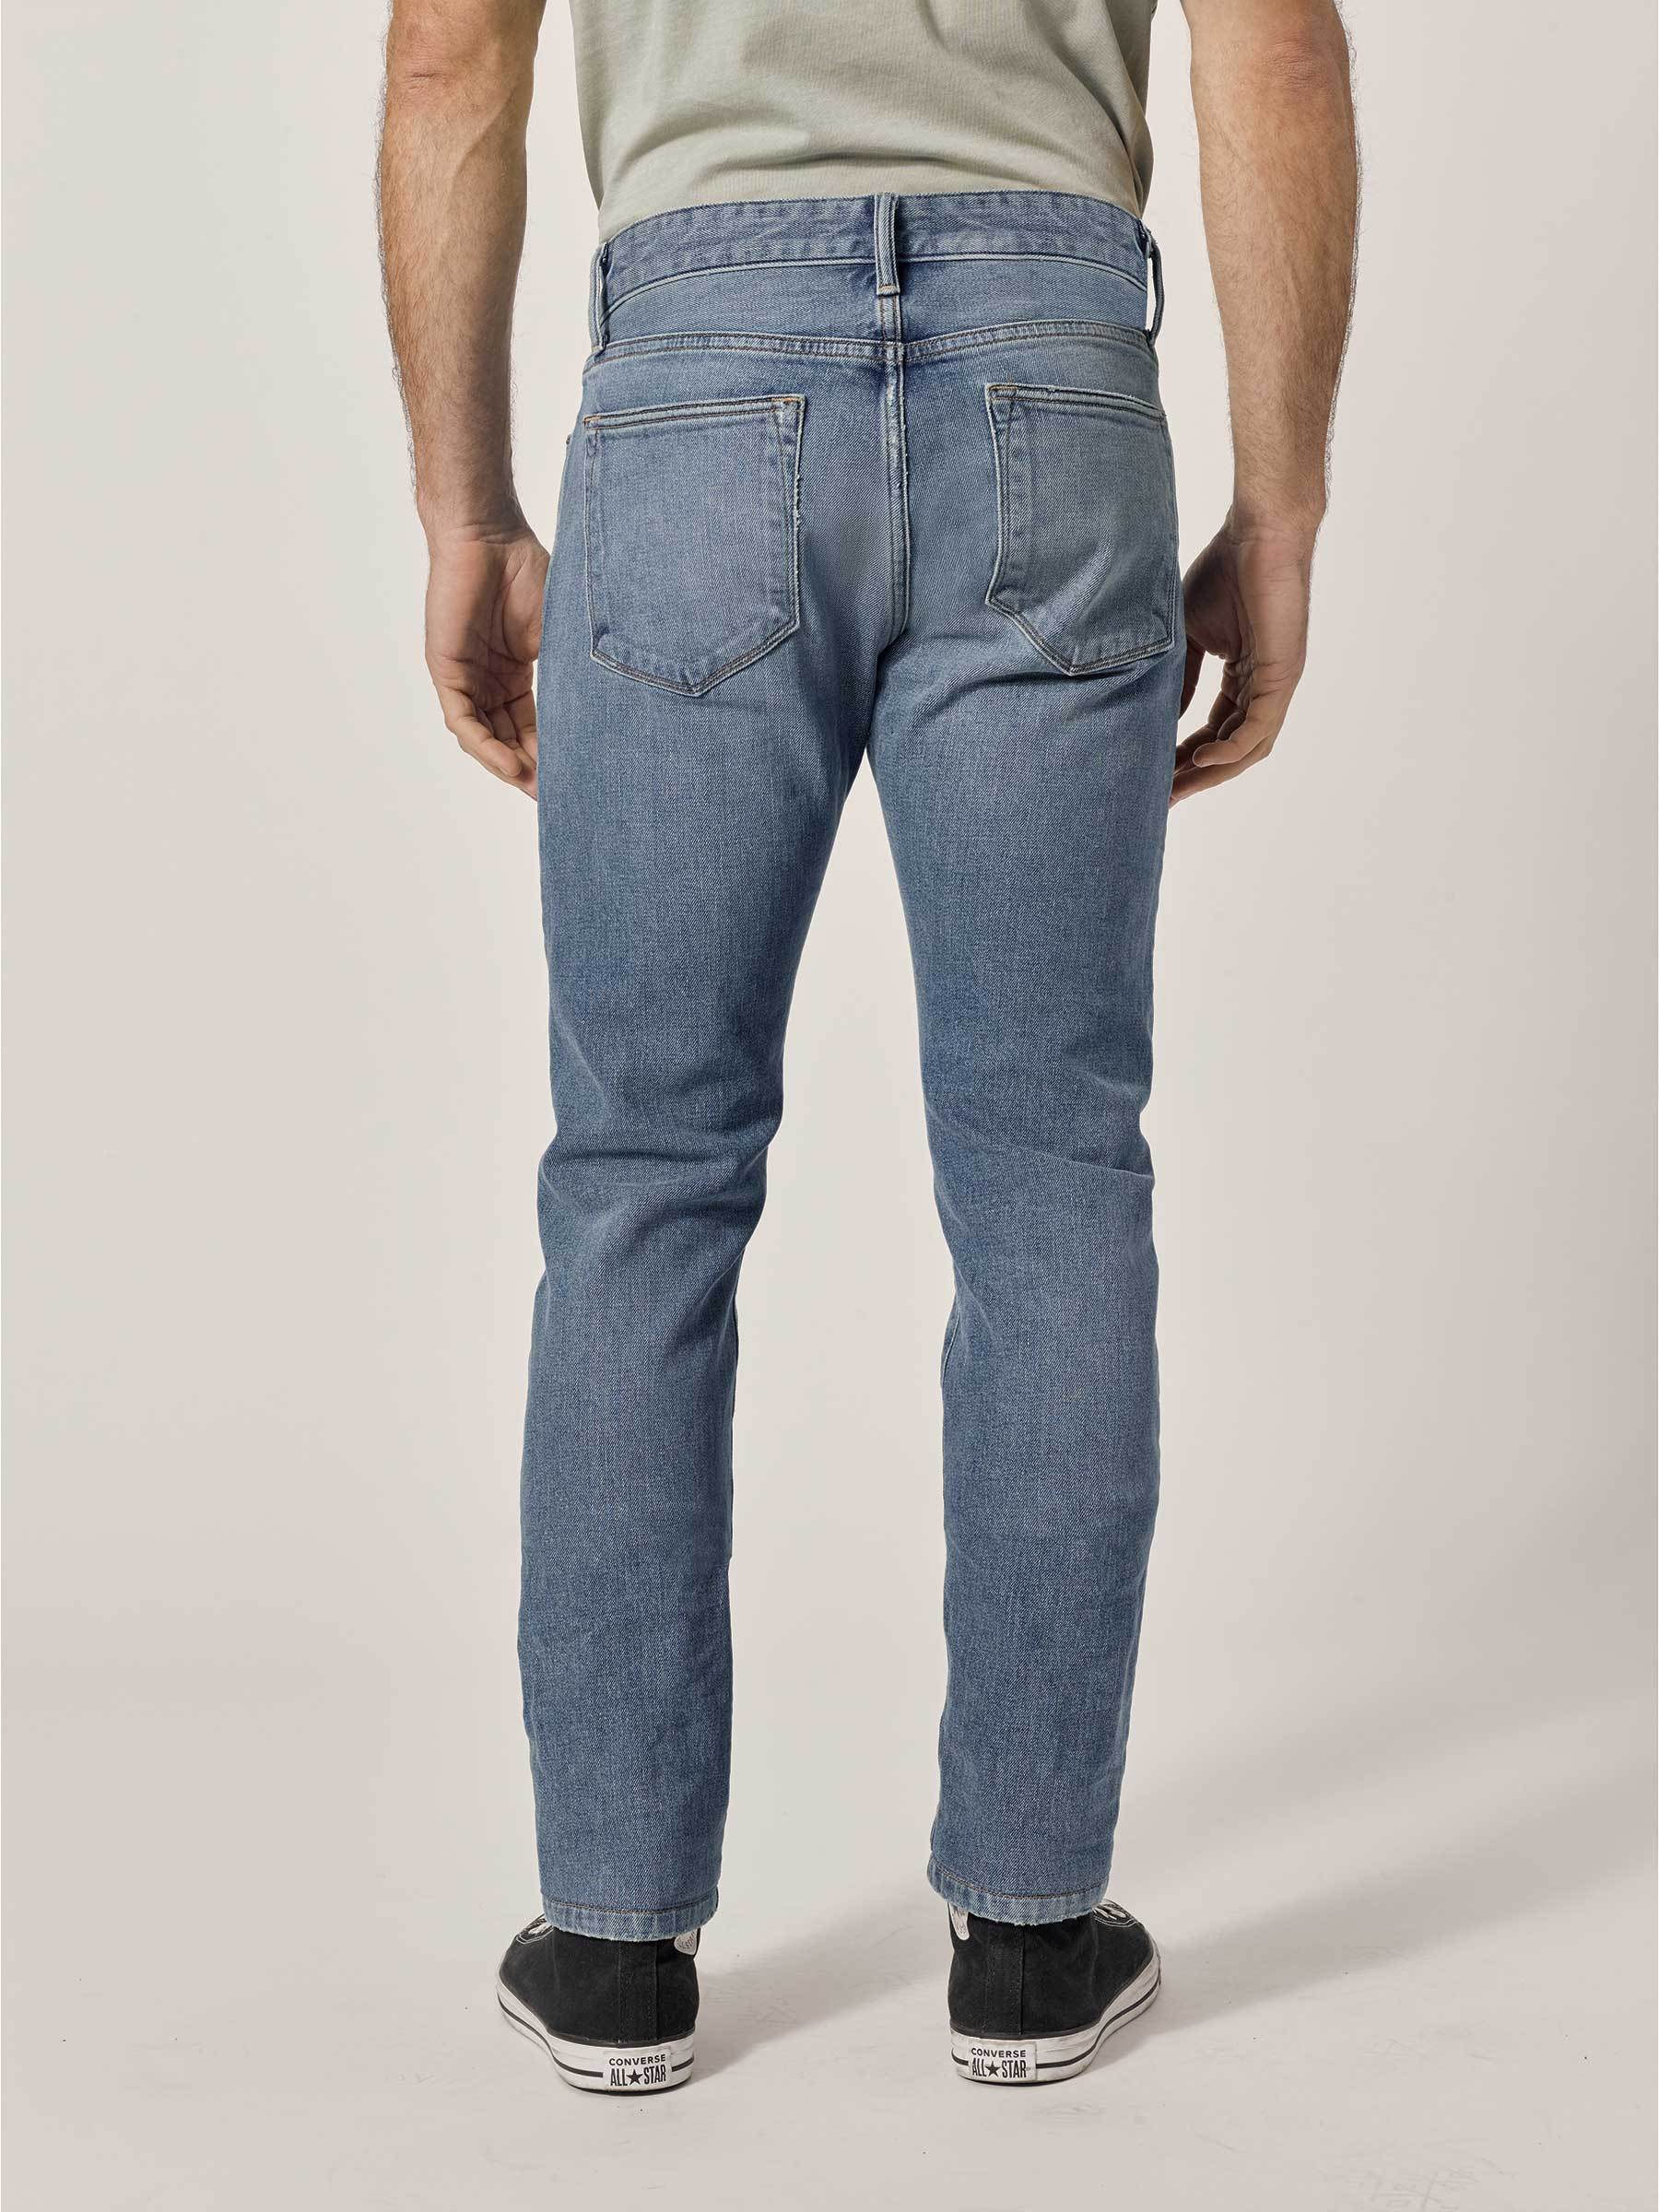 Buck Mason - L001 Light Wash Maverick Slim Jean